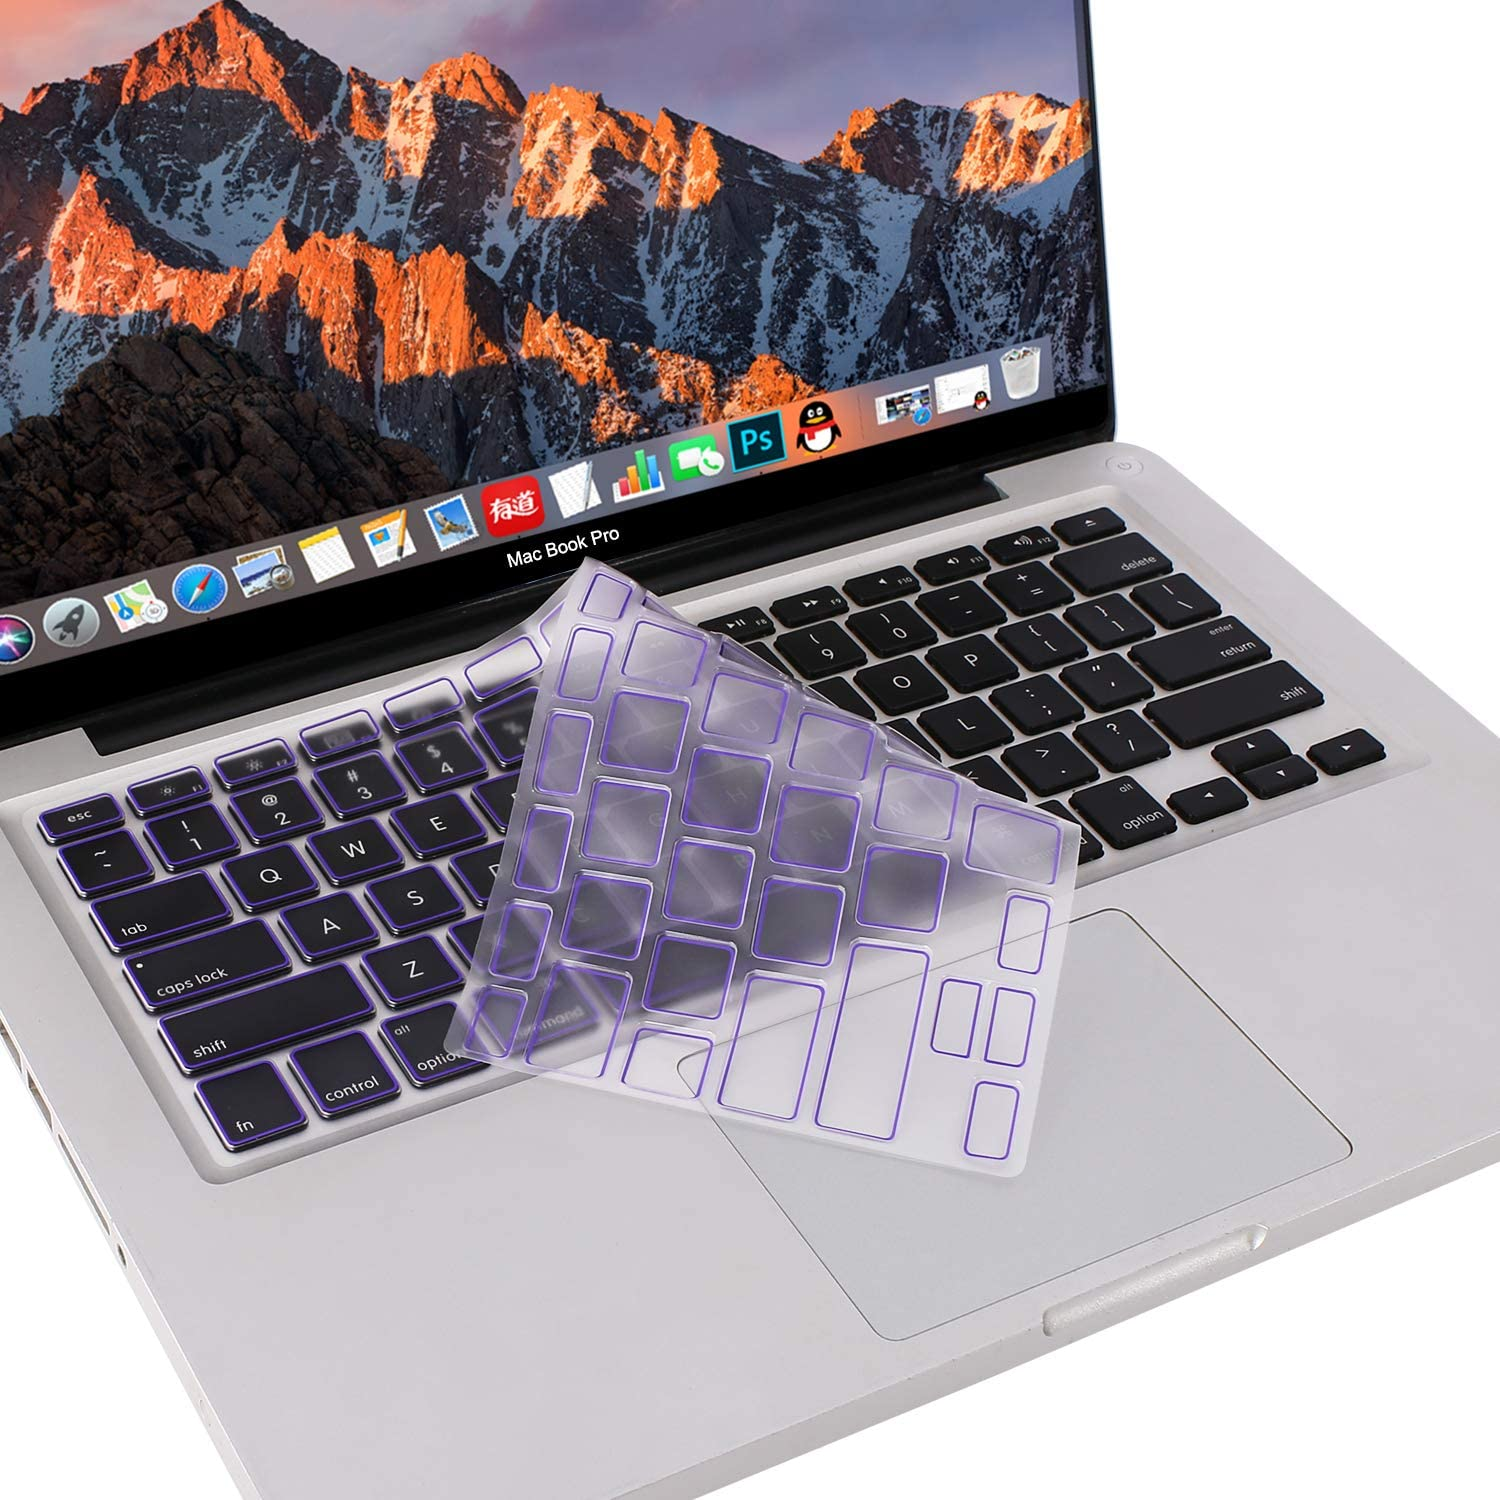 MOSISO Ultra Thin Keyboard Cover Protector Soft TPU Skin Compatible with MacBook Pro 13/15 inch (with/without Retina Display, 2015 or Older Version) MacBook Air 13 inch(Release 2010-2017),Ultra Violet